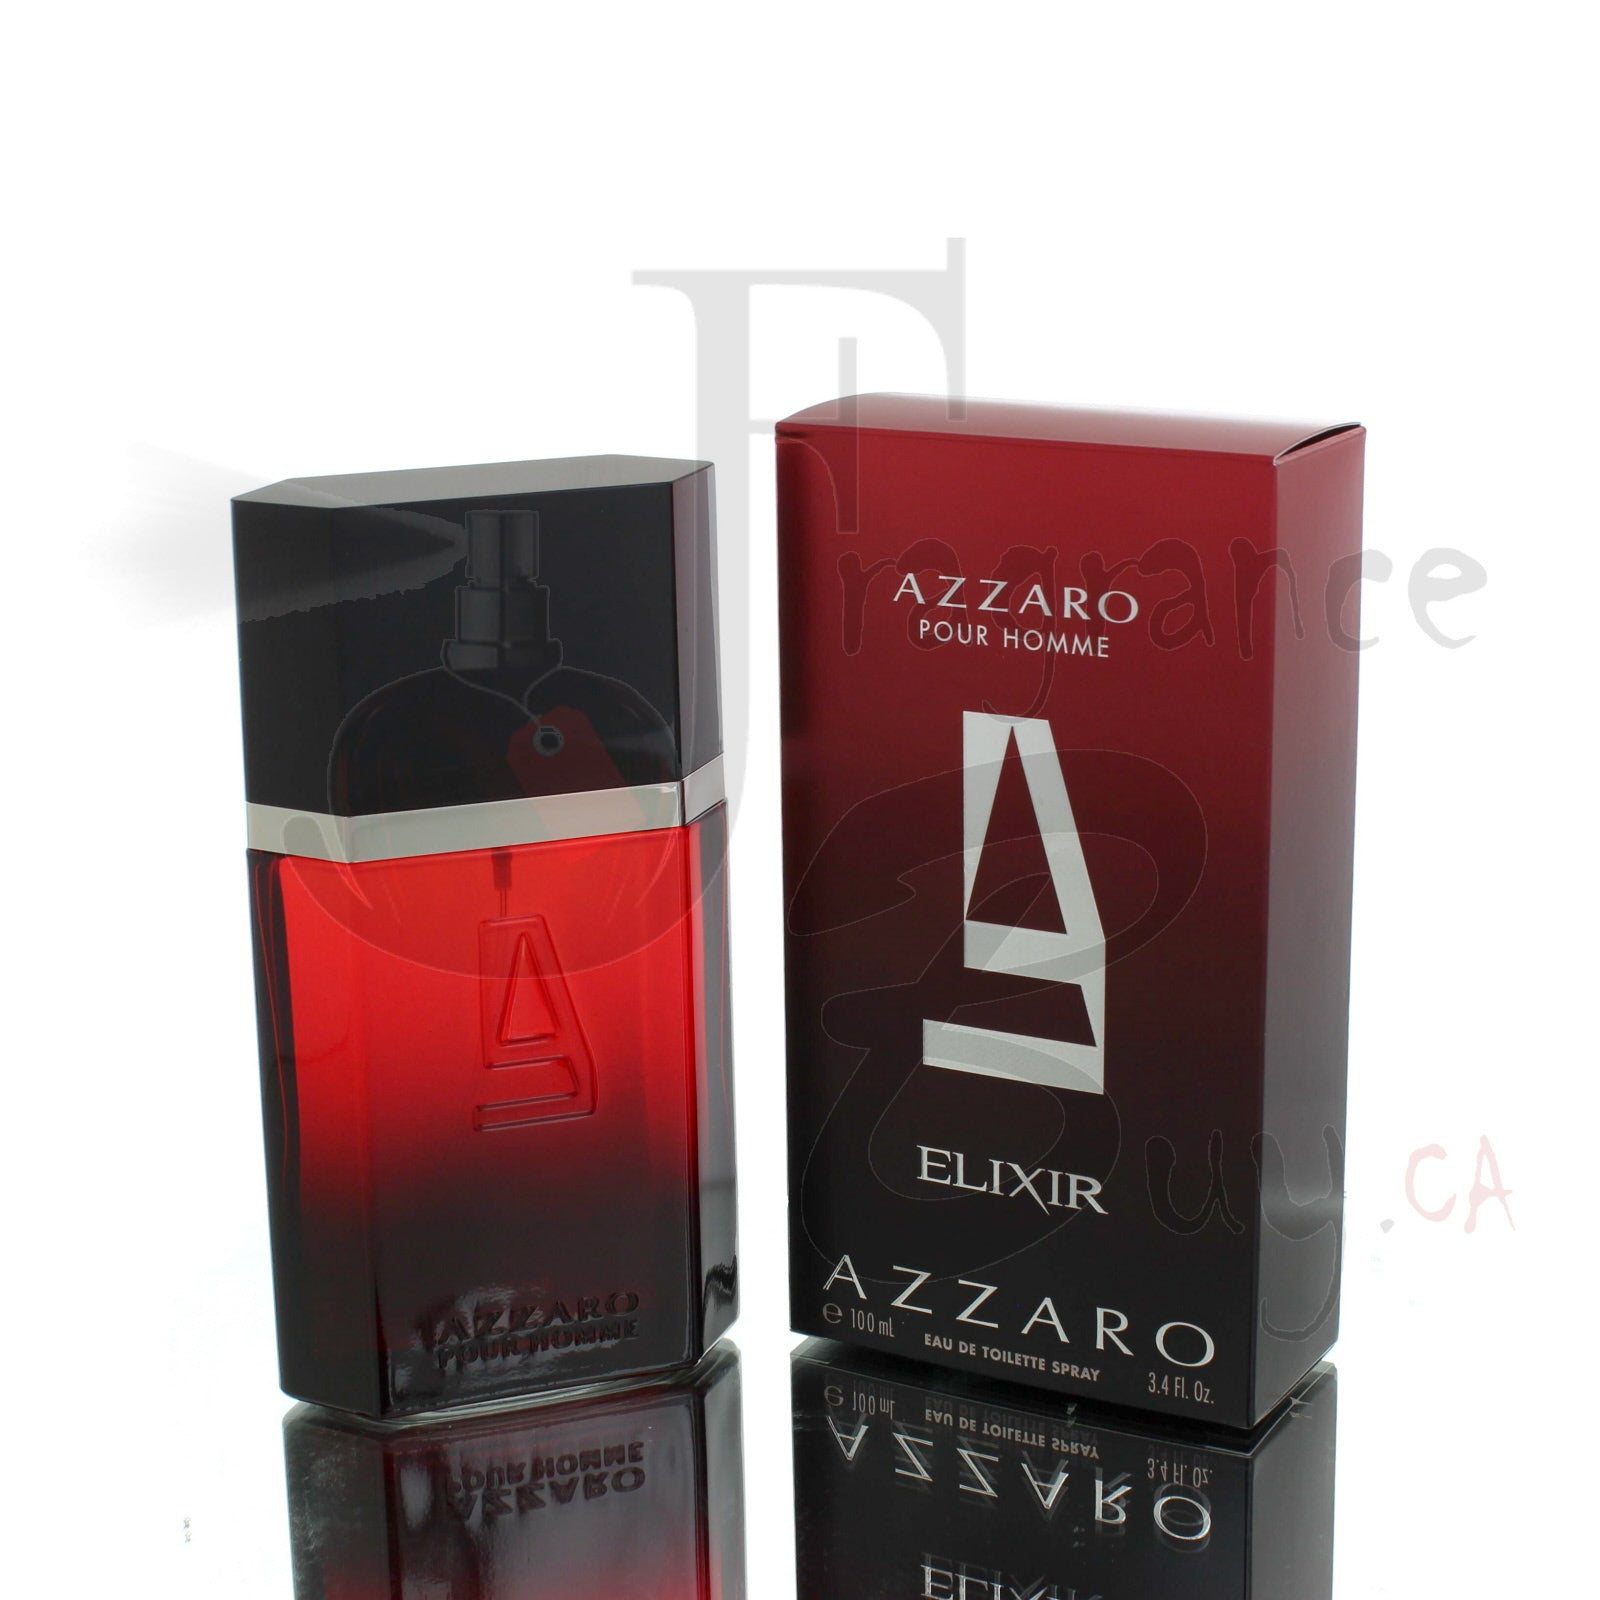 Azzaro Elixir For Man